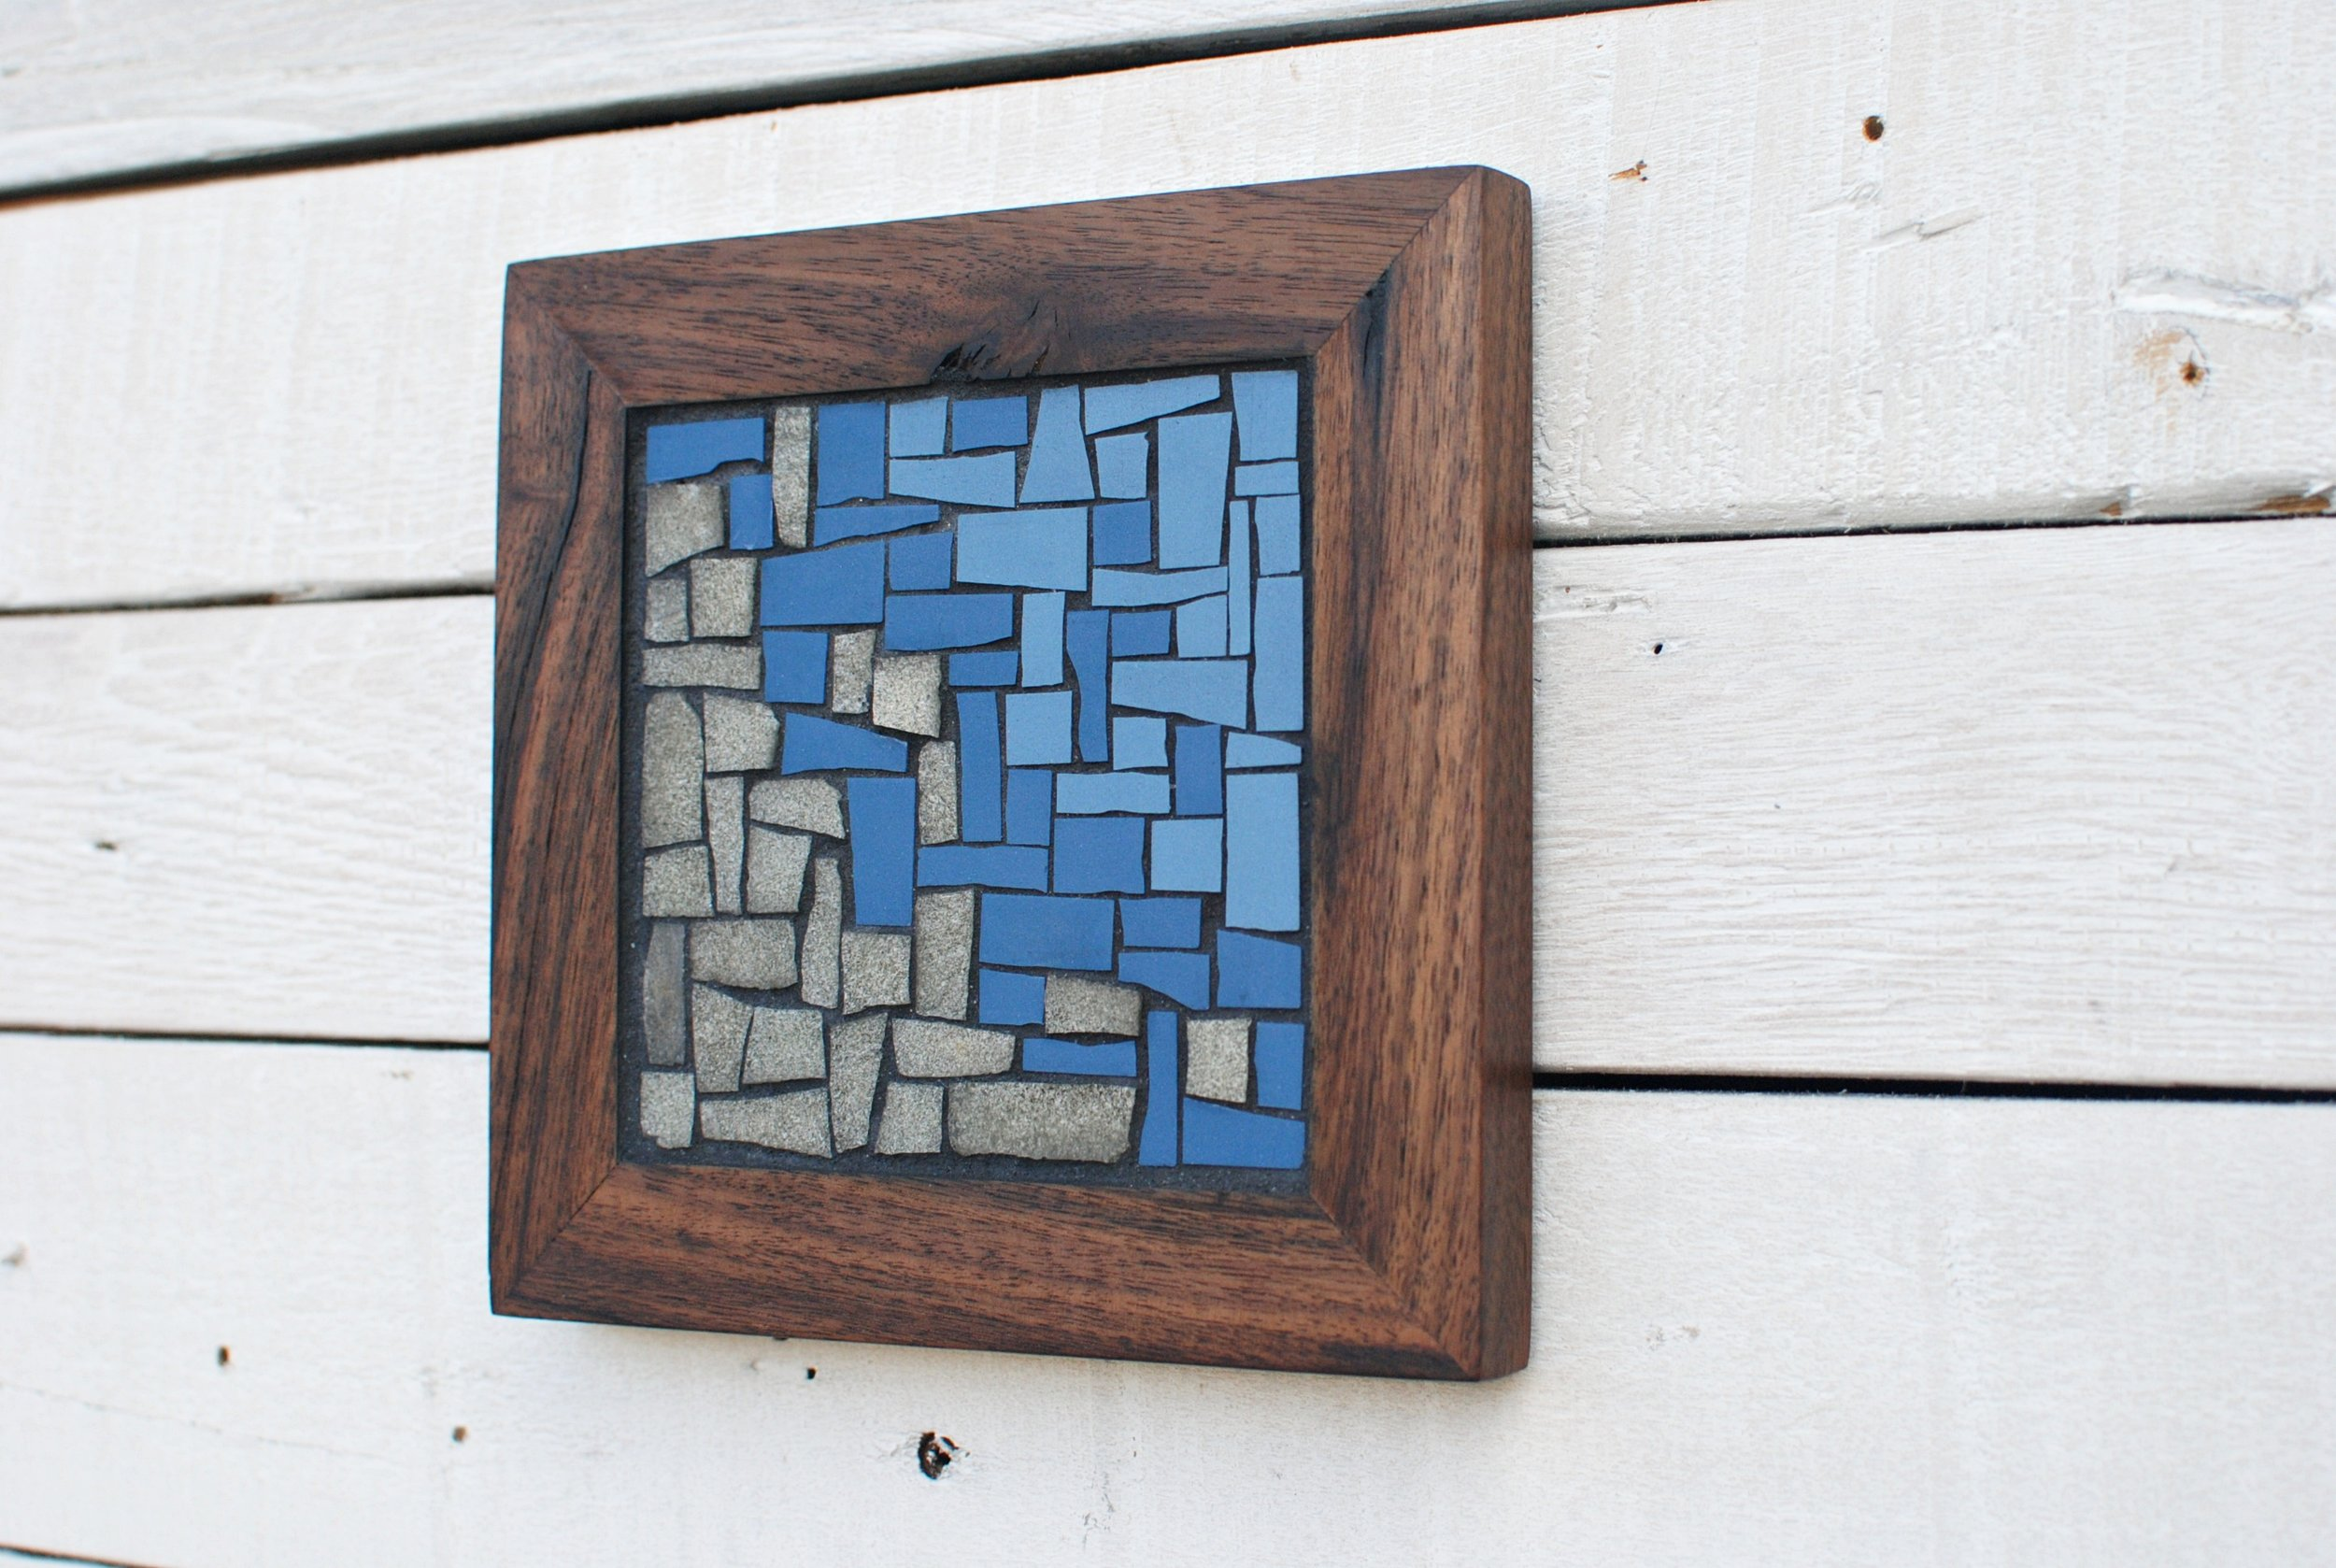 Ocean mosaic trivet on wall